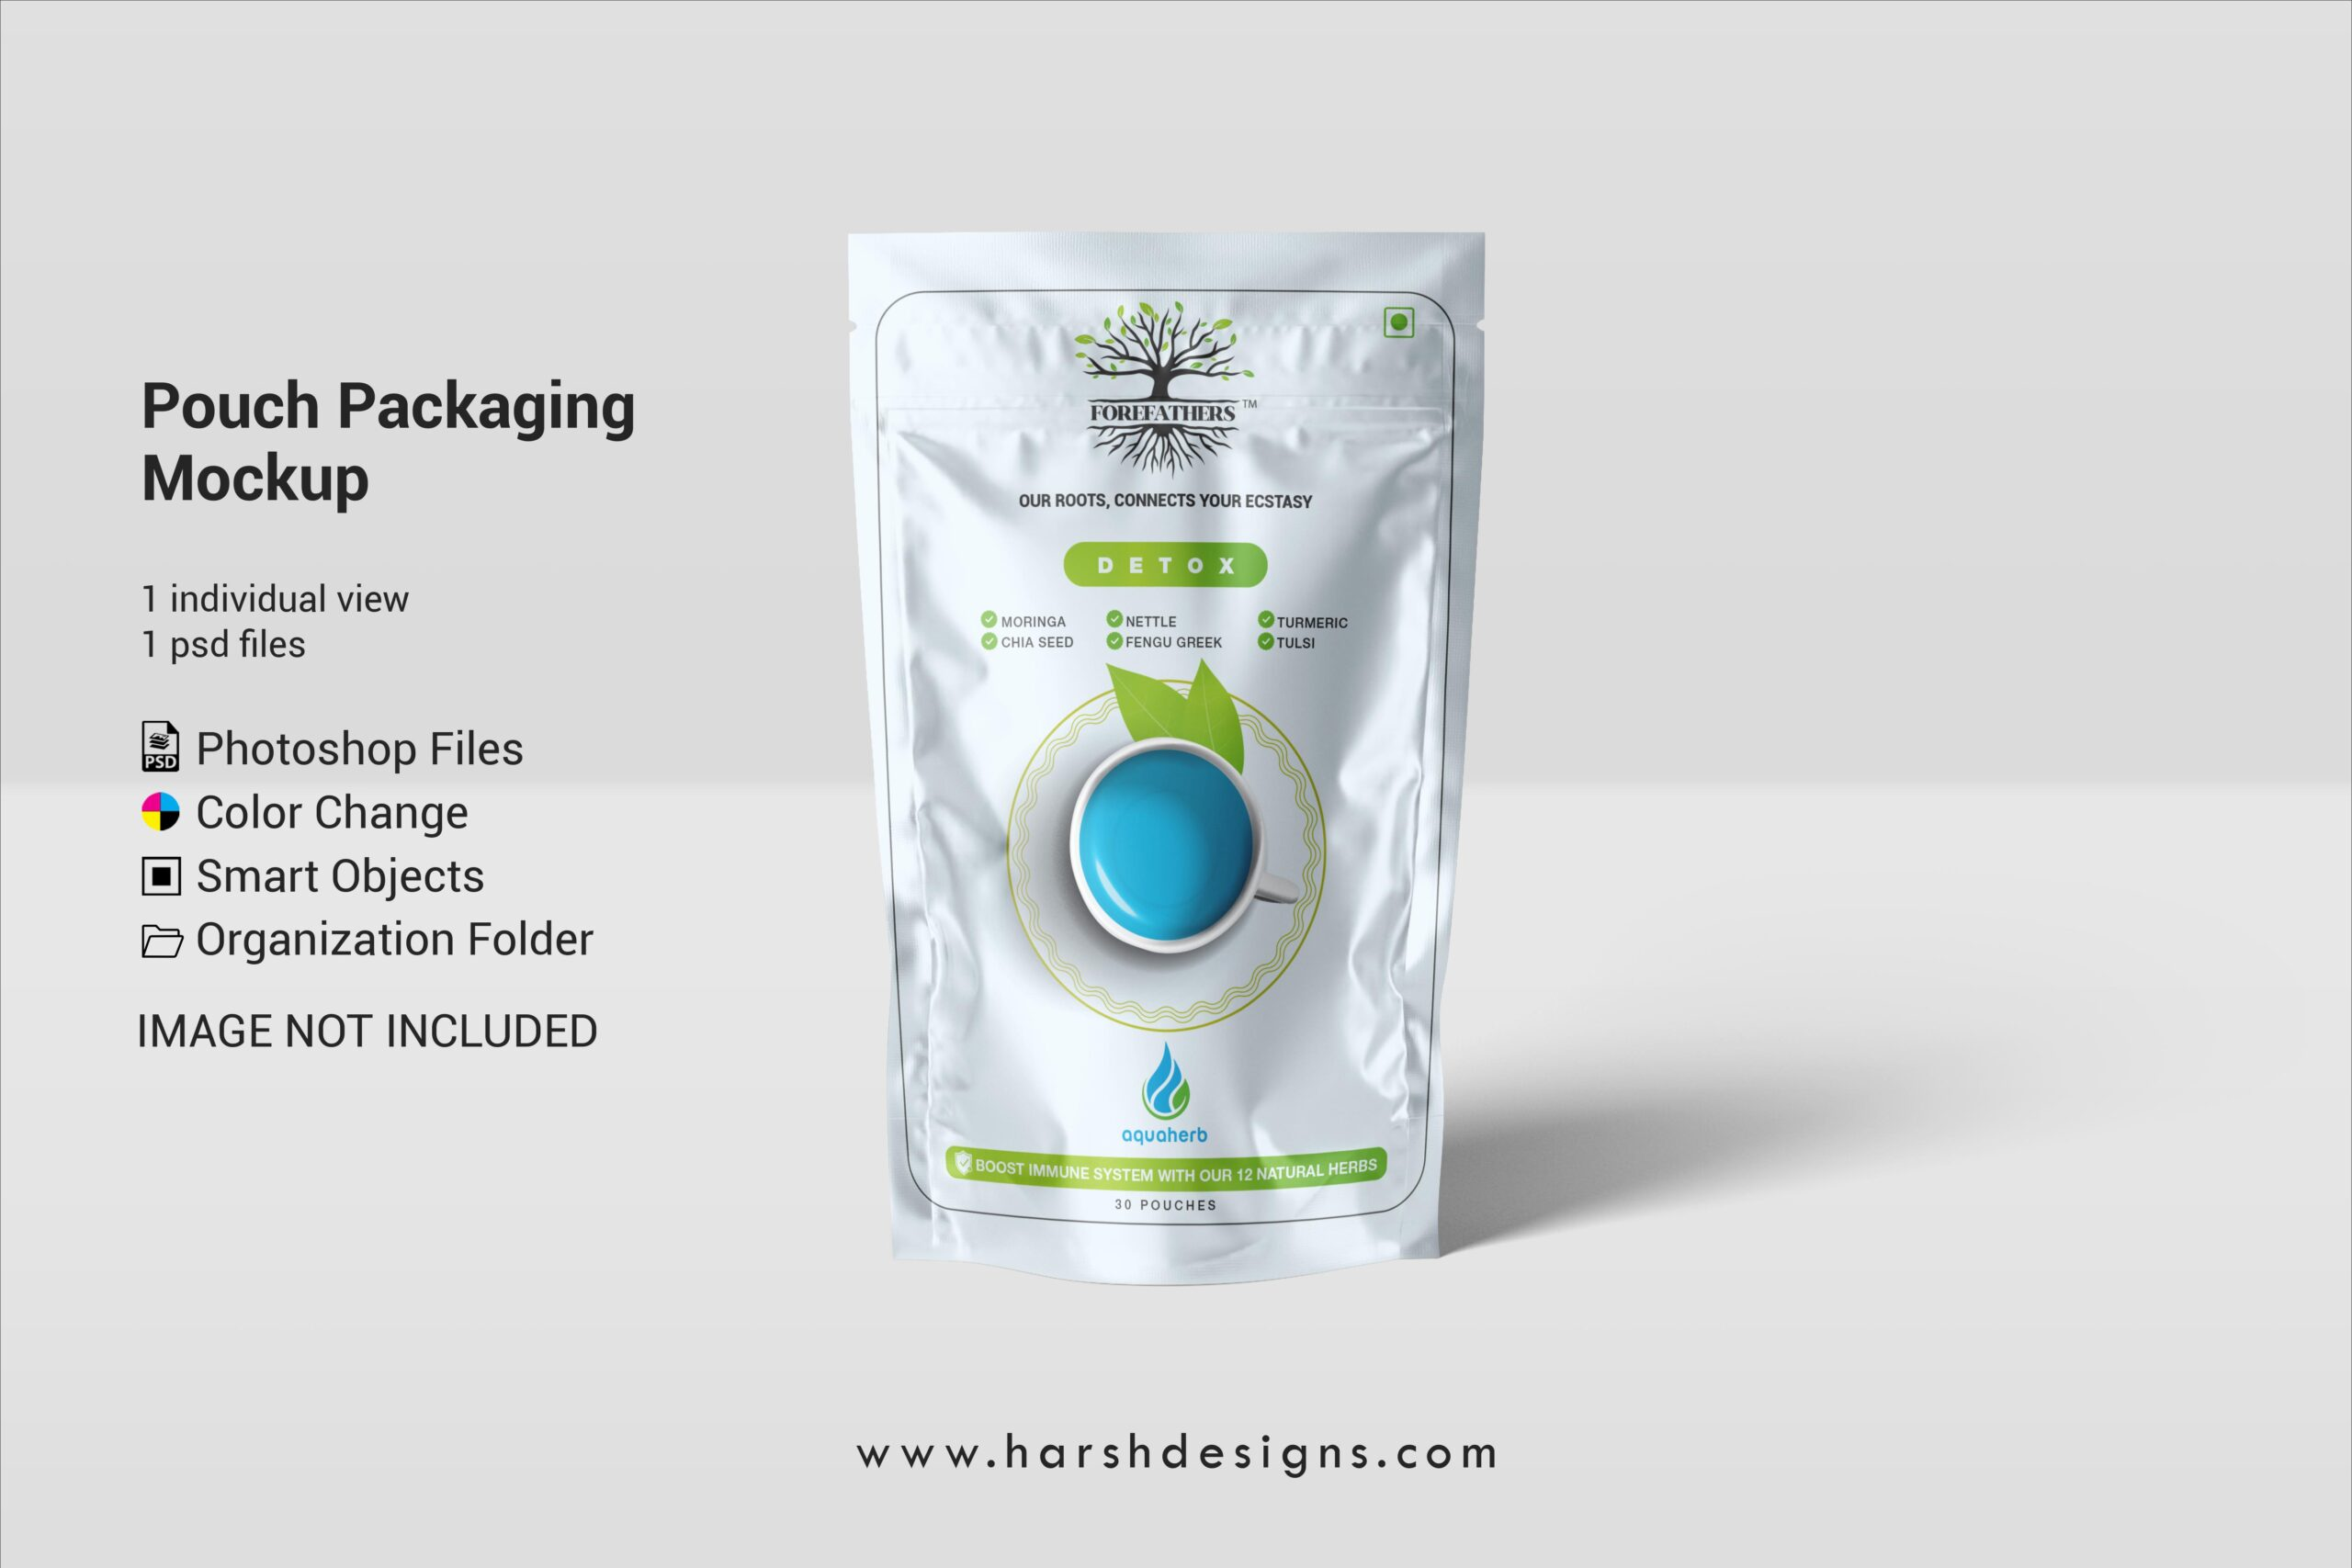 Harsh Designs Pouch Packaging PSD Mockup Packaging Branding Mockups 2 scaled